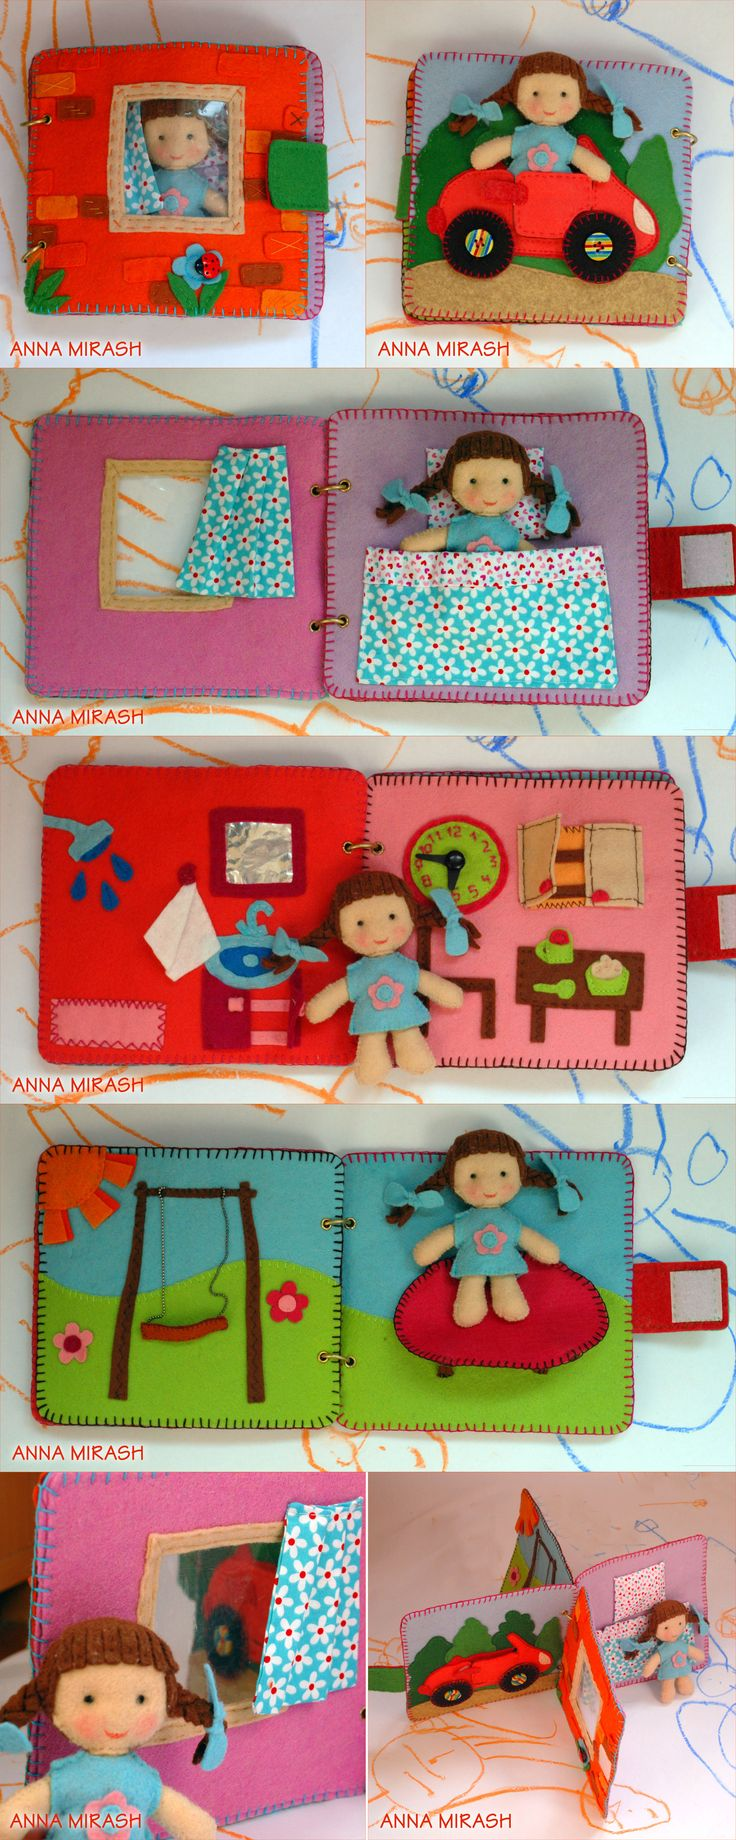 anna mirash crafts - little girl felt home book